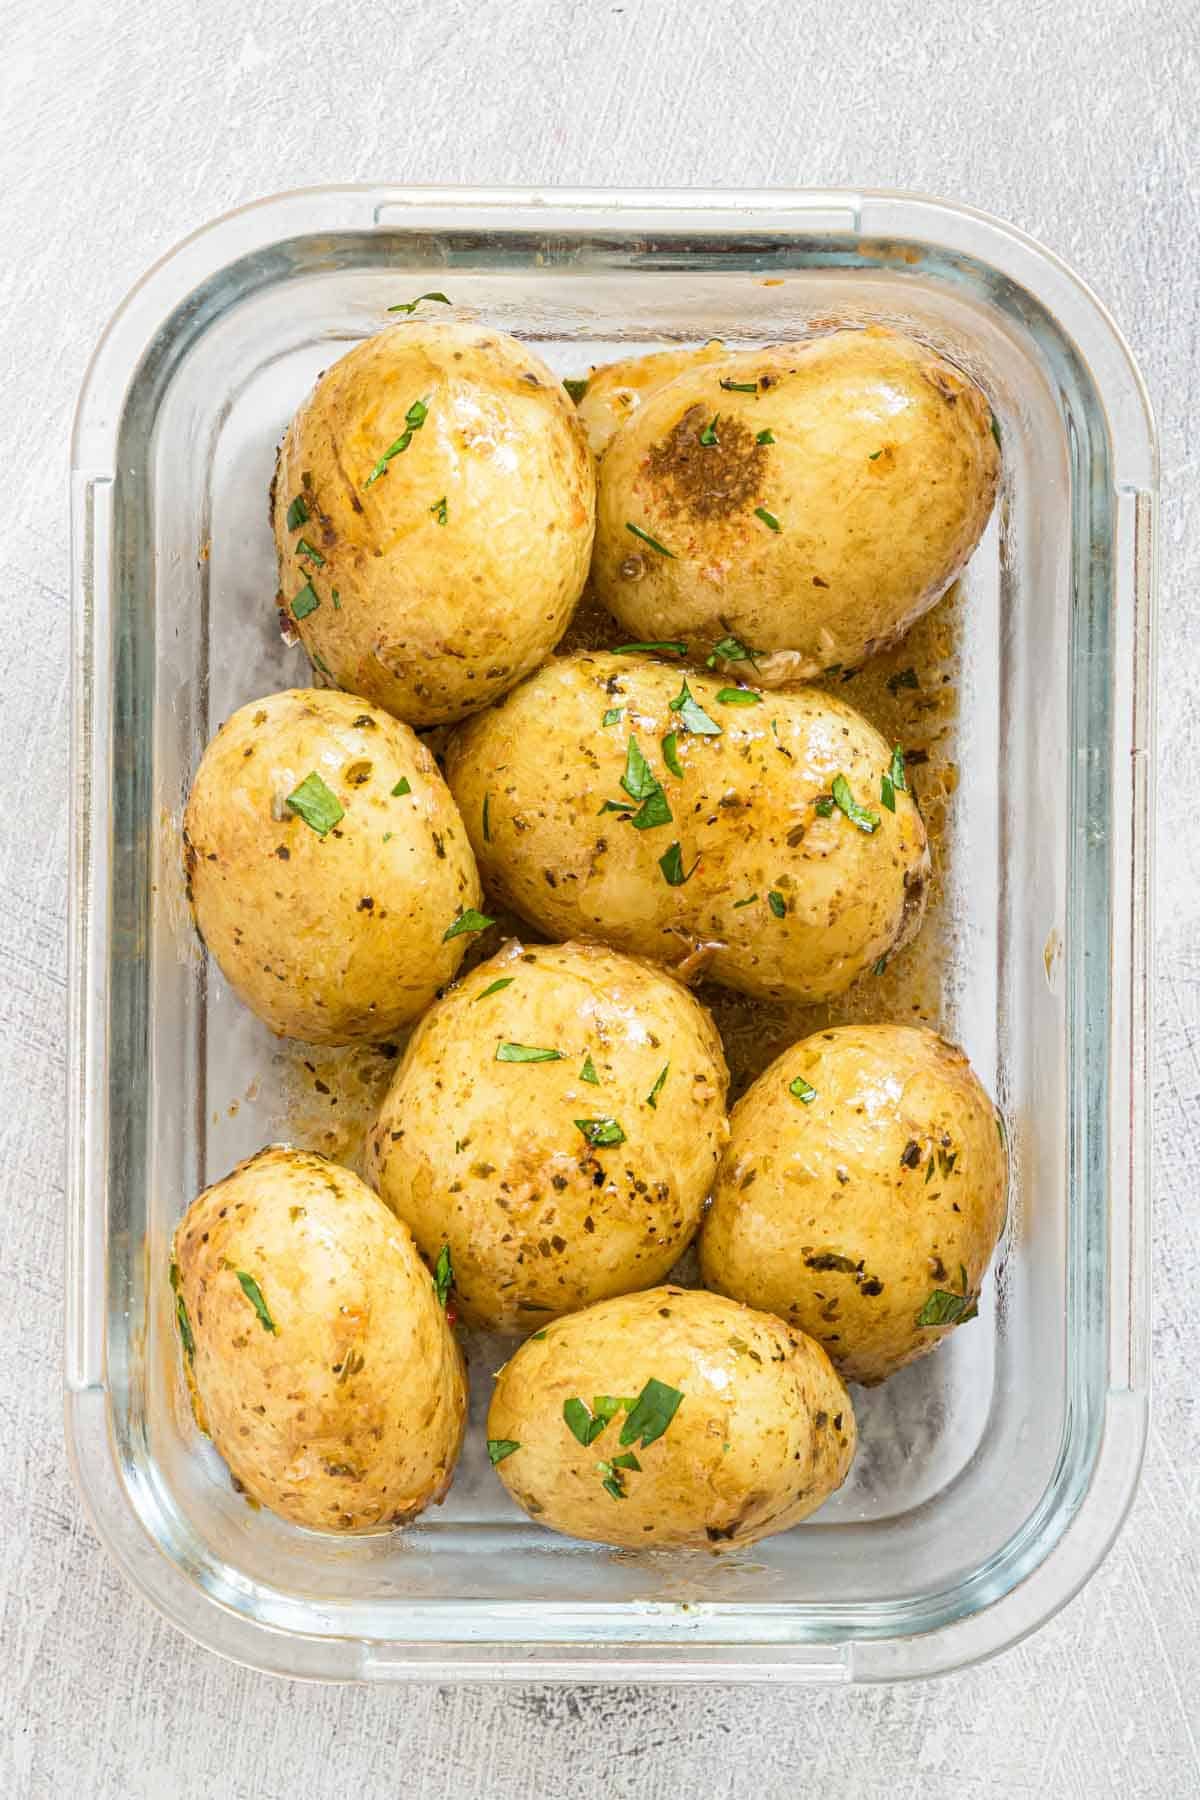 Instant pot baby potatoes in a meal prep glass jar with herbs sprinkled on top